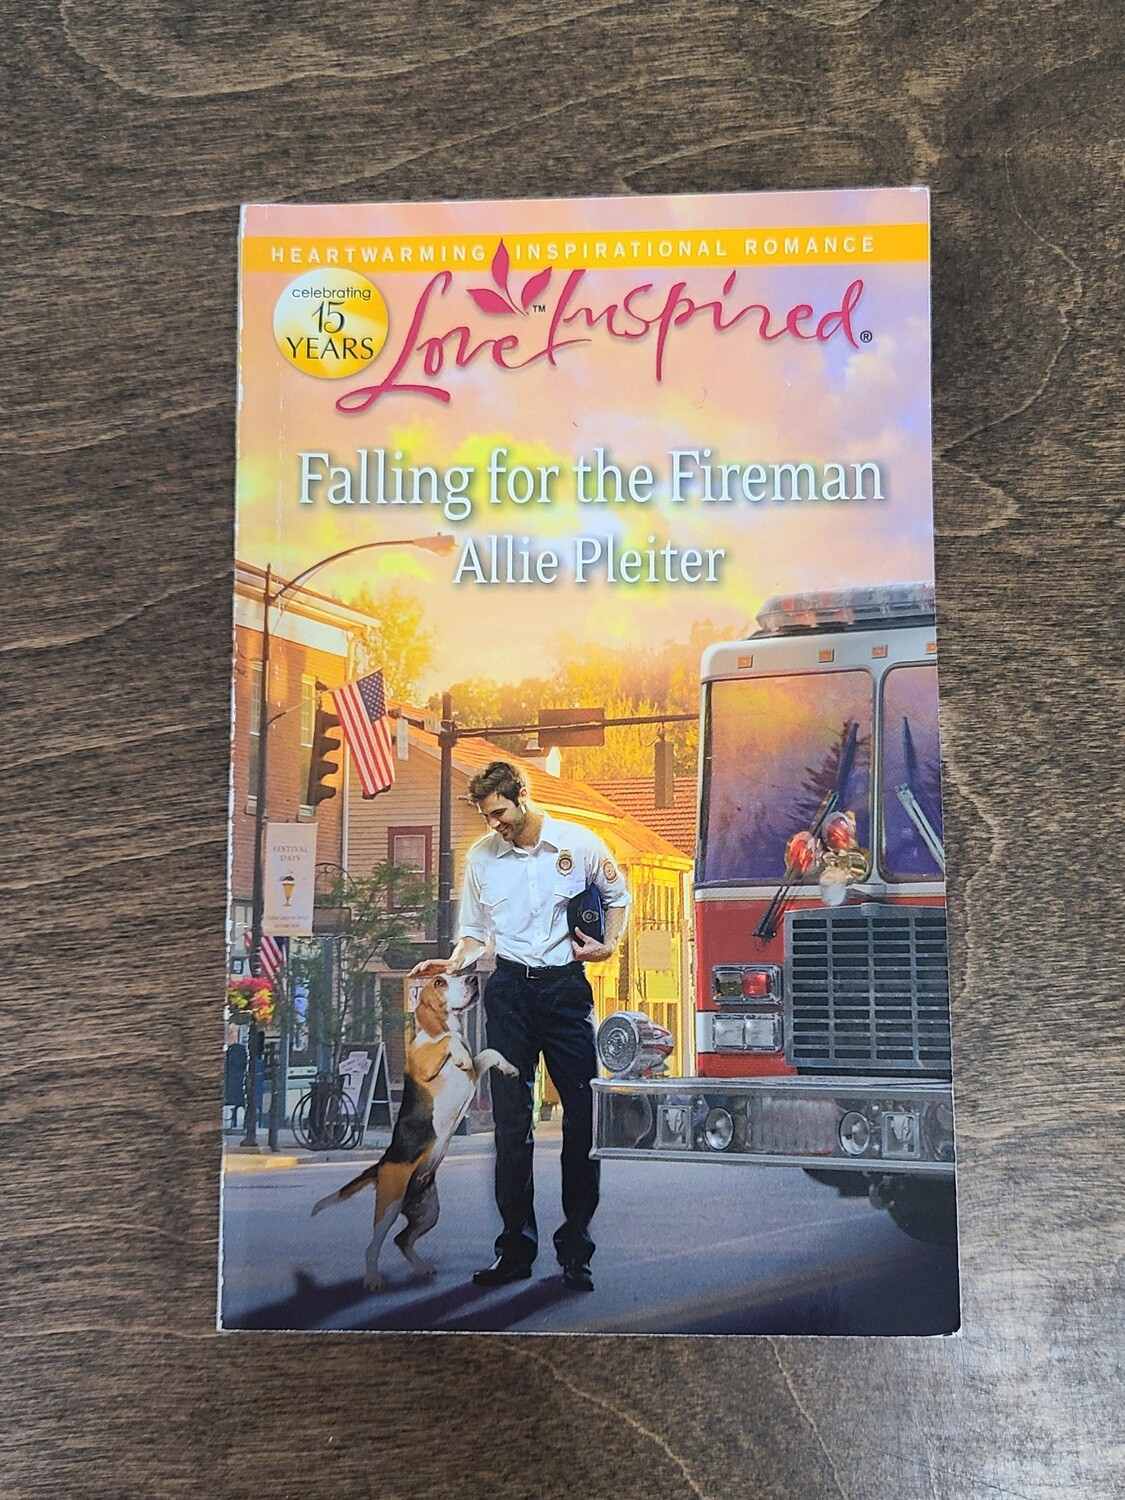 Falling for the Fireman by Allie Pleiter